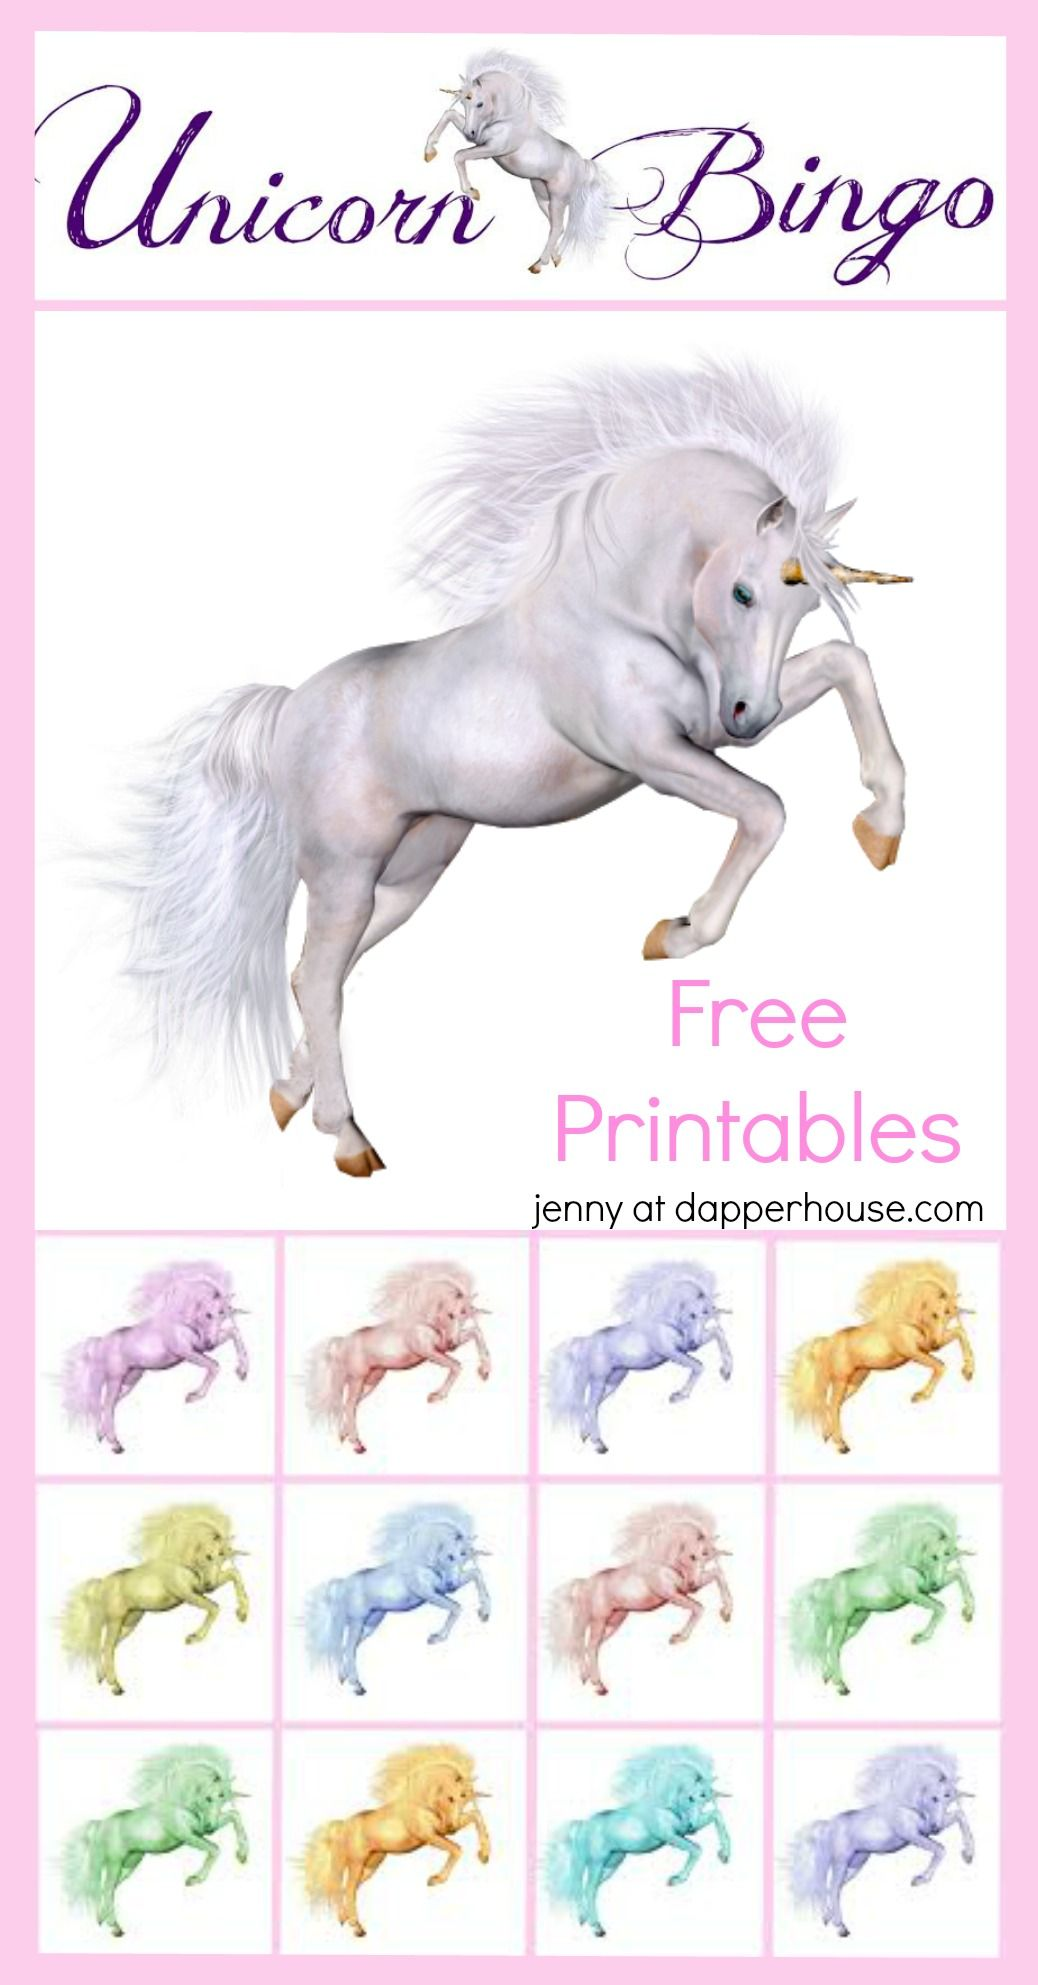 Free Printable Unicorn Party Game Bingo - Kids unicorn party, Unicorn printables, Unicorn party, Unicorn birthday parties, Rainbow unicorn party, Unicorn games - This is not a sponsored post  Opinions and content belong to jenny at dapperhouse  Unicorns are magical and wonderful  So are games and free printables! Here are some fun and free printables that you can use for spending time with your child or for a full blown party! They are sure to love the